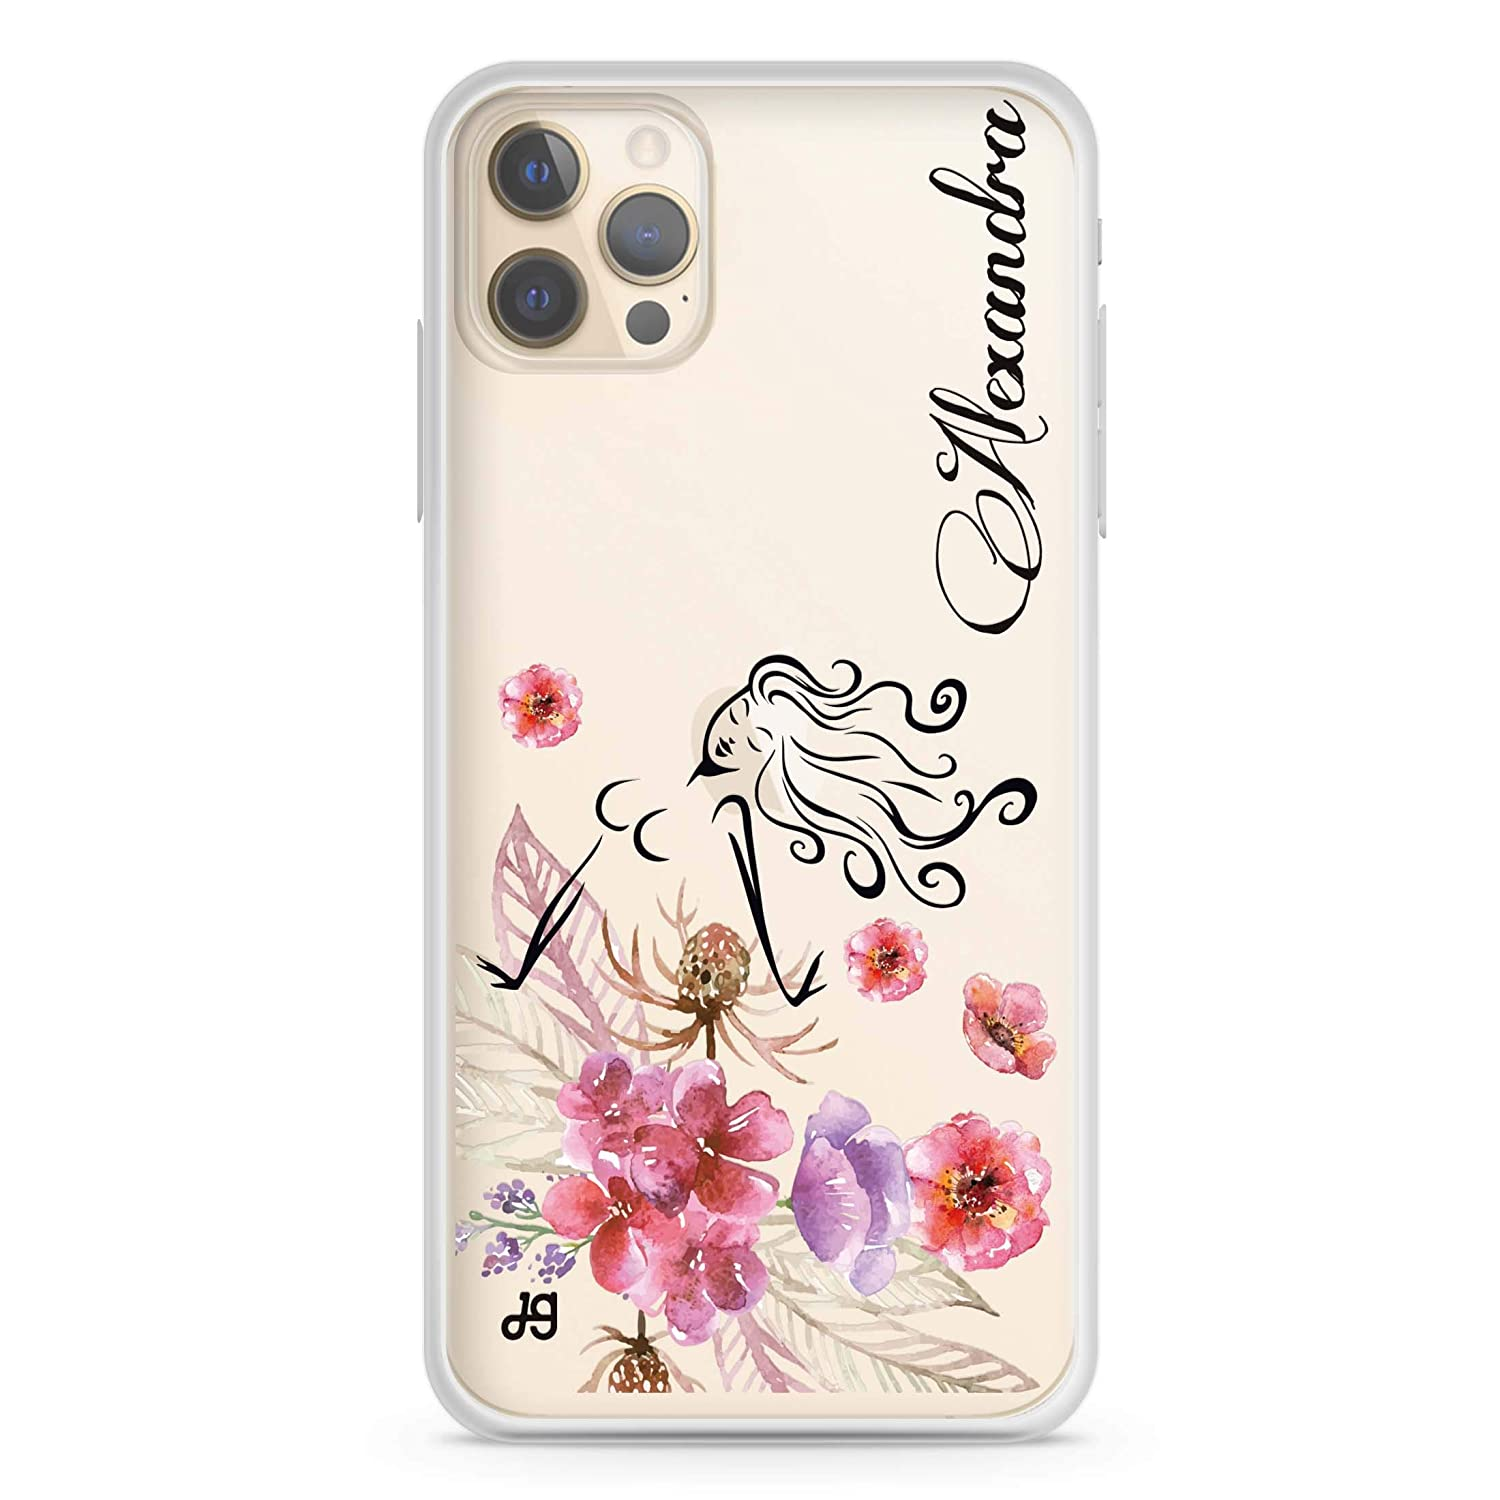 Floral Fairy I iPhone store 12 Pro Max 65% OFF Max Soft Clear iPh Case